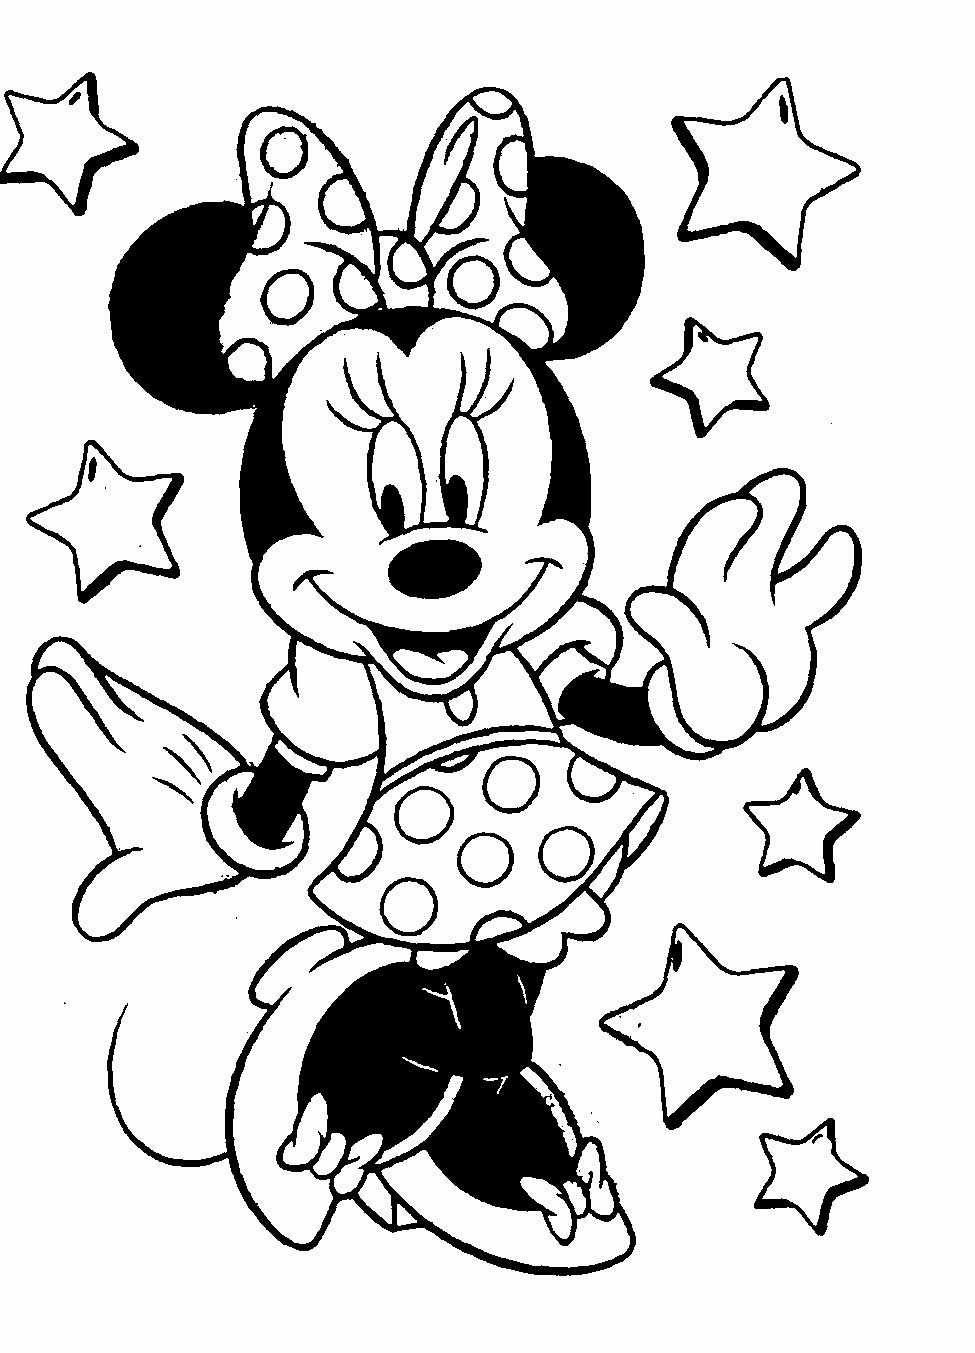 Disney Character Coloring Pages New Disney Coloring Pages In 2020 Free Disney Coloring Pages Mickey Mouse Coloring Pages Minnie Mouse Coloring Pages